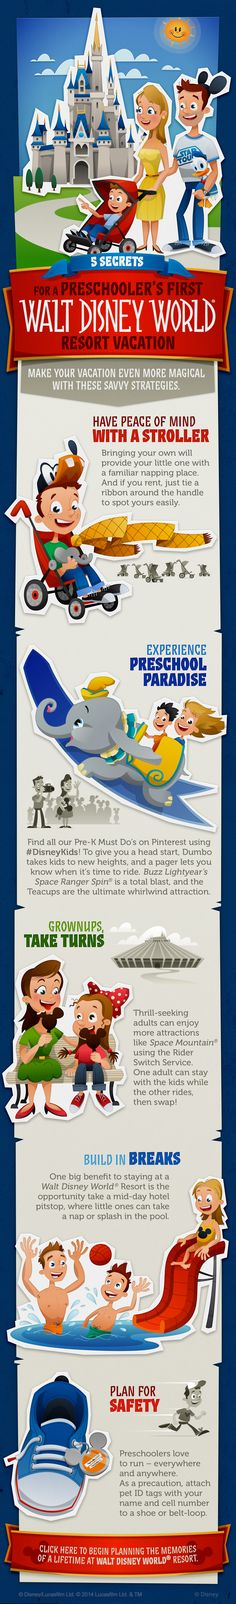 5 Secrets for a Preschooler's First Walt Disney World Resort Vacation! #DisneyKids #toddlers #vacation #tips #tricks